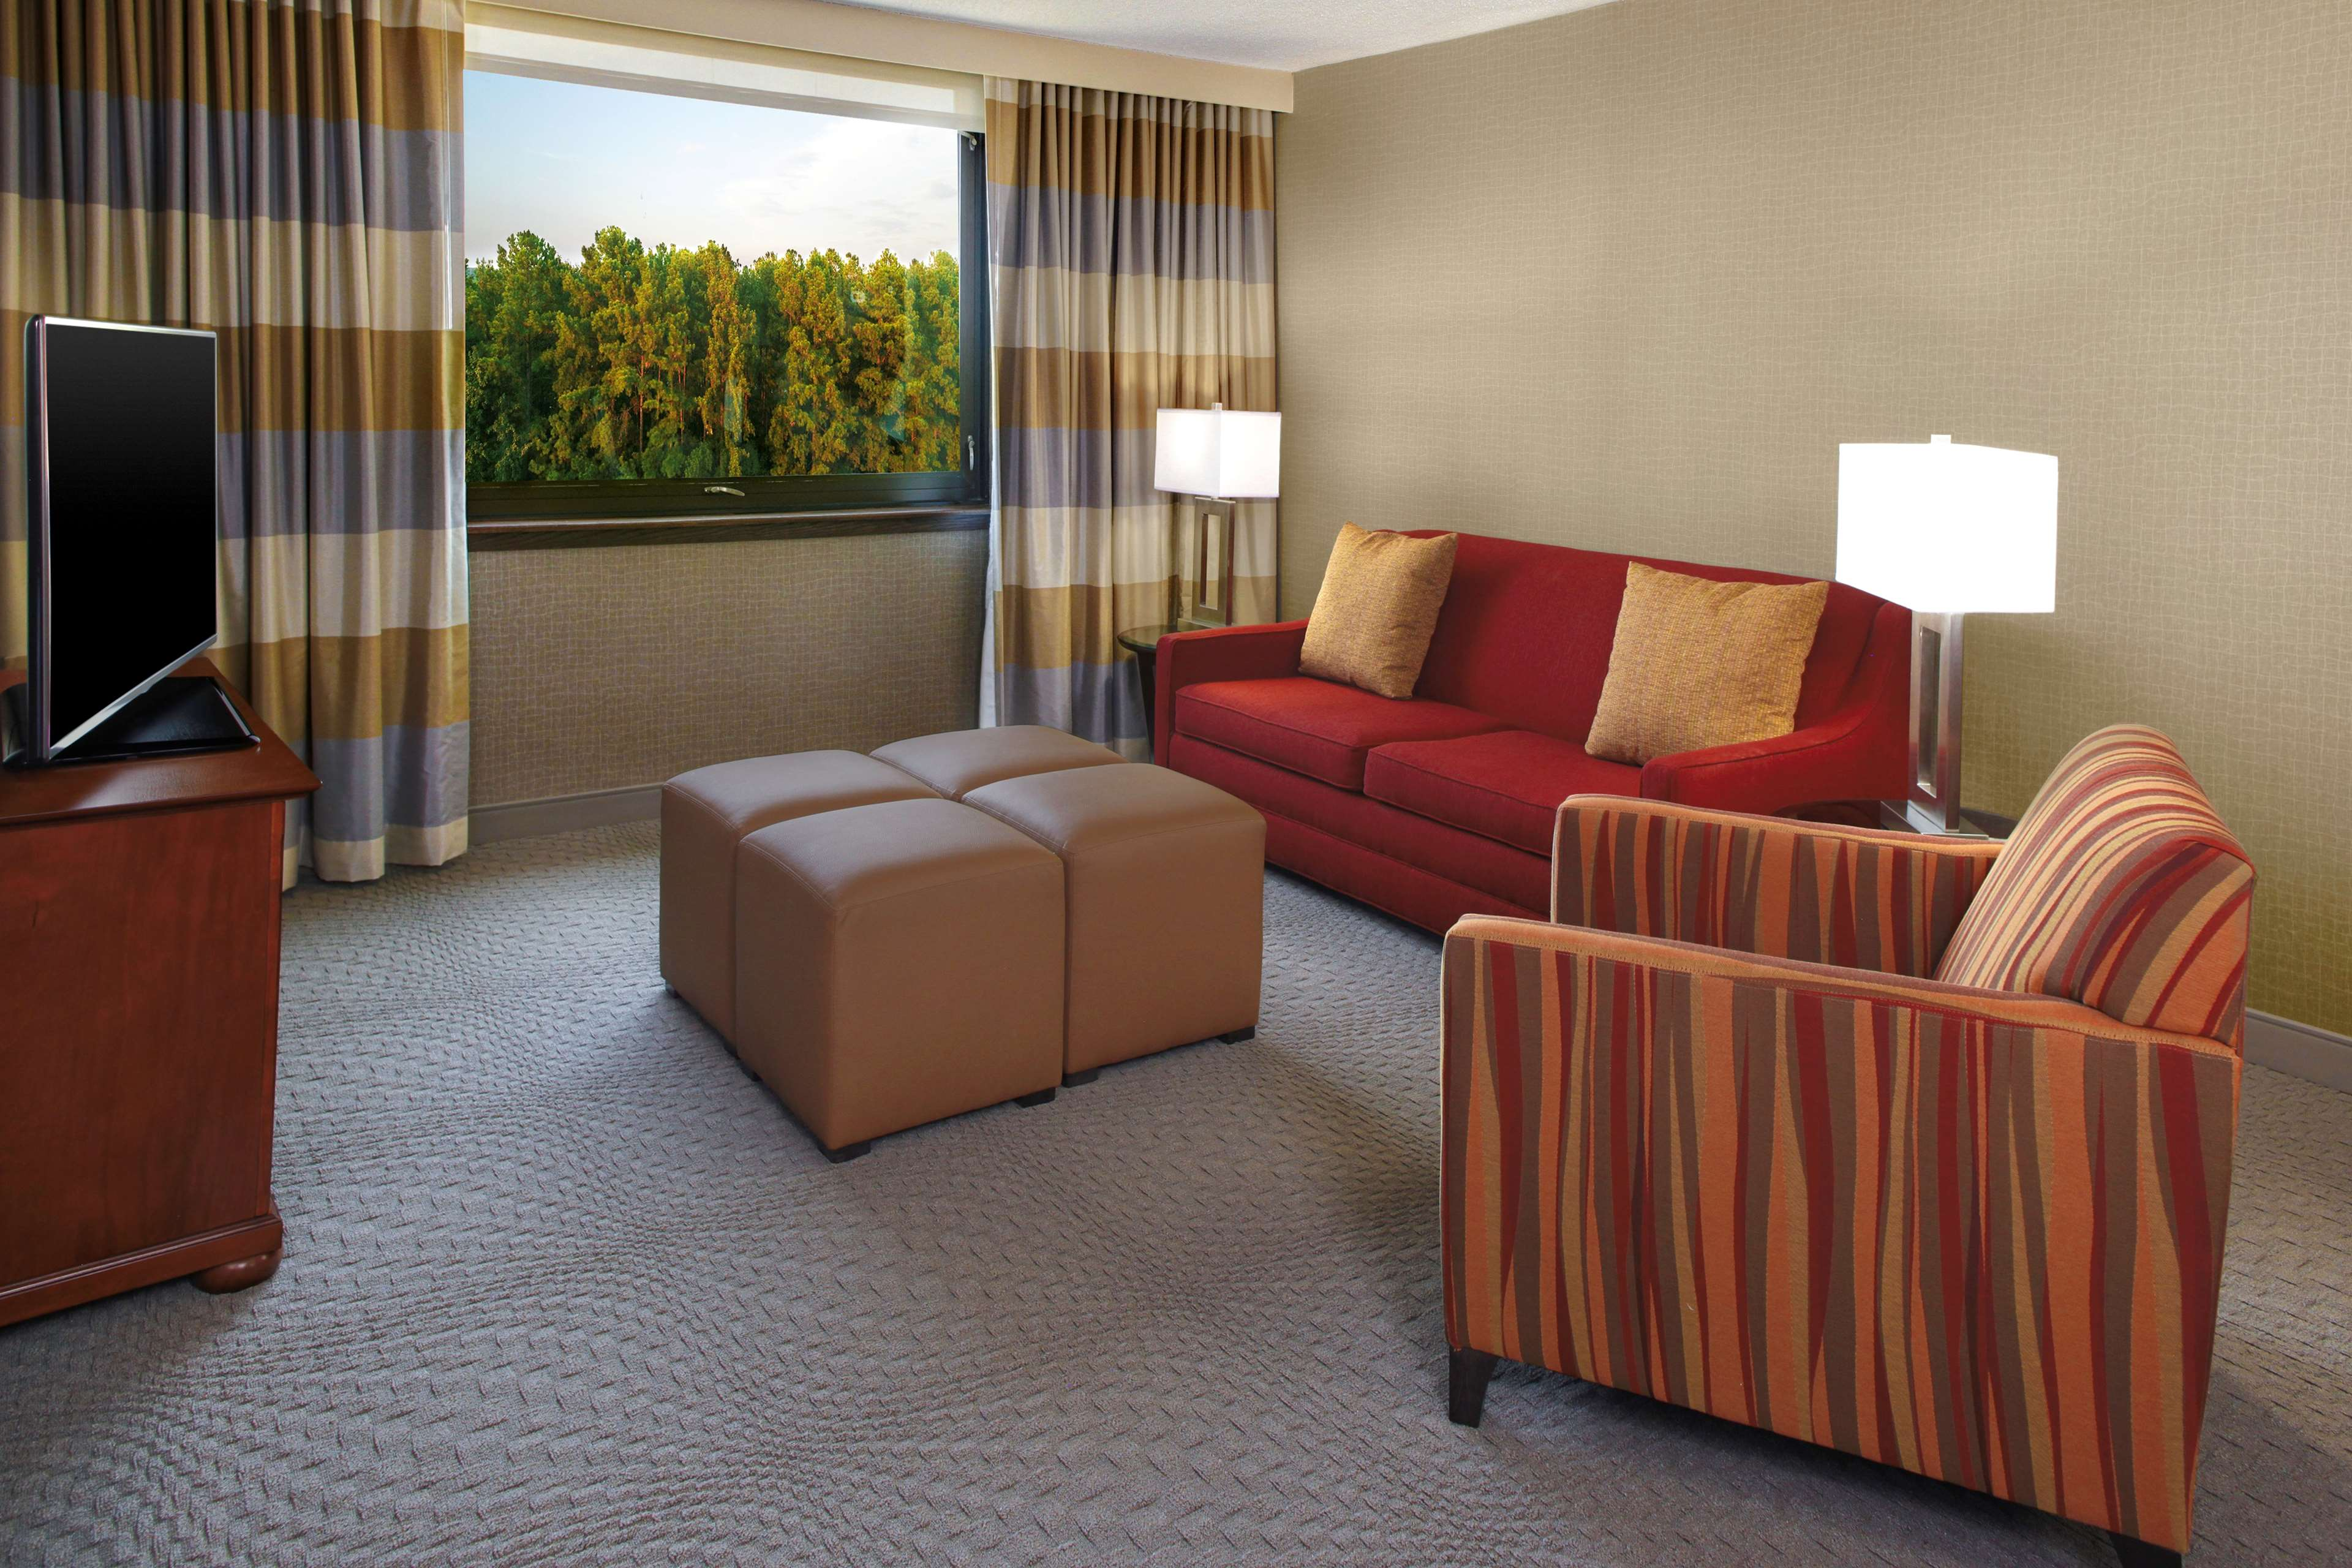 Sheraton Imperial Hotel Raleigh Durham Airport At Research Hotel Near Me Best Hotel Near Me [hotel-italia.us]